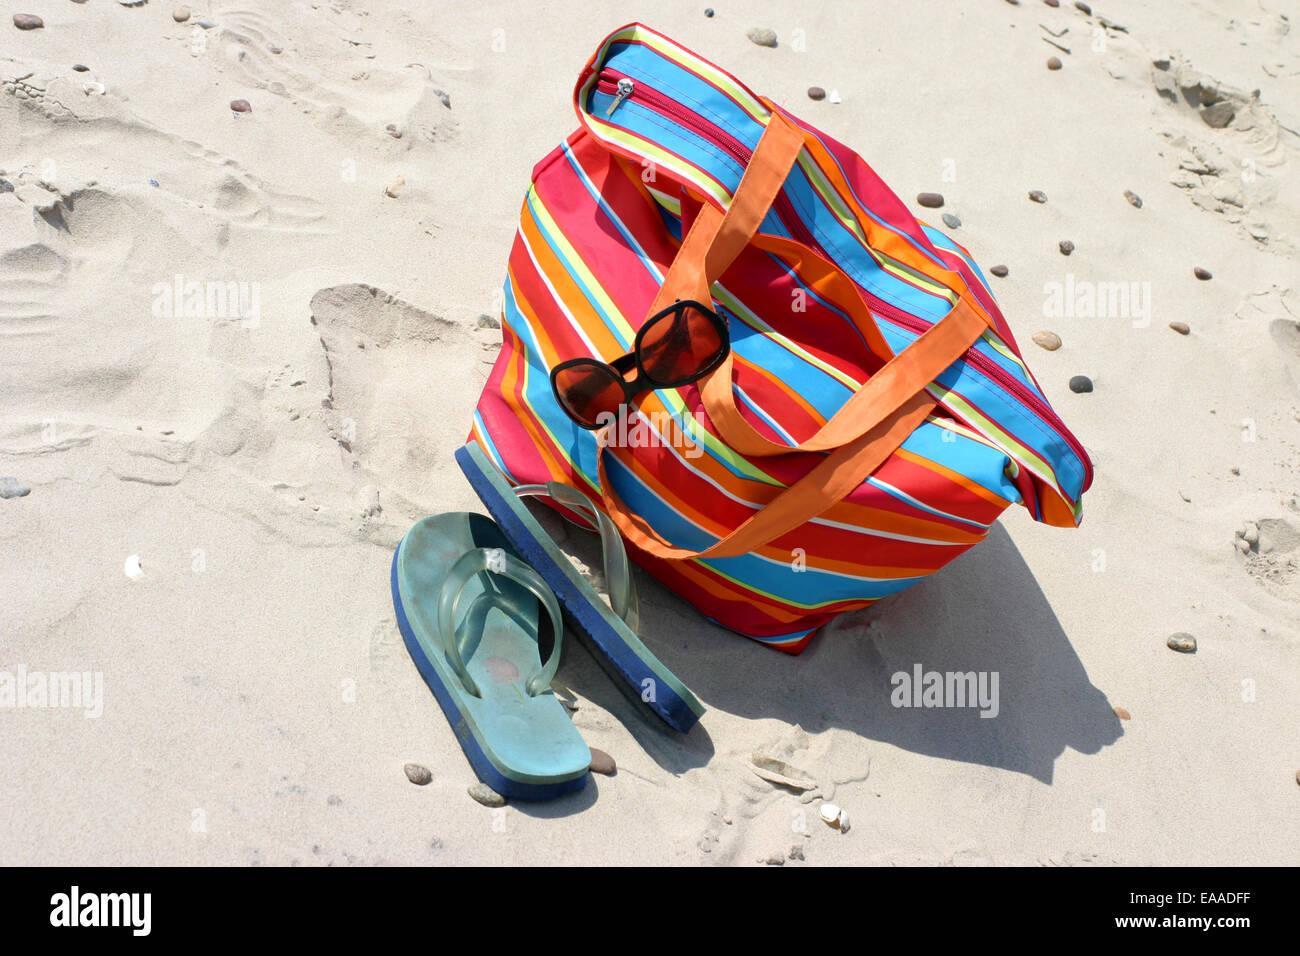 Beach items - flip flops, beach bag and sunglasses lying on the sand - Stock Image